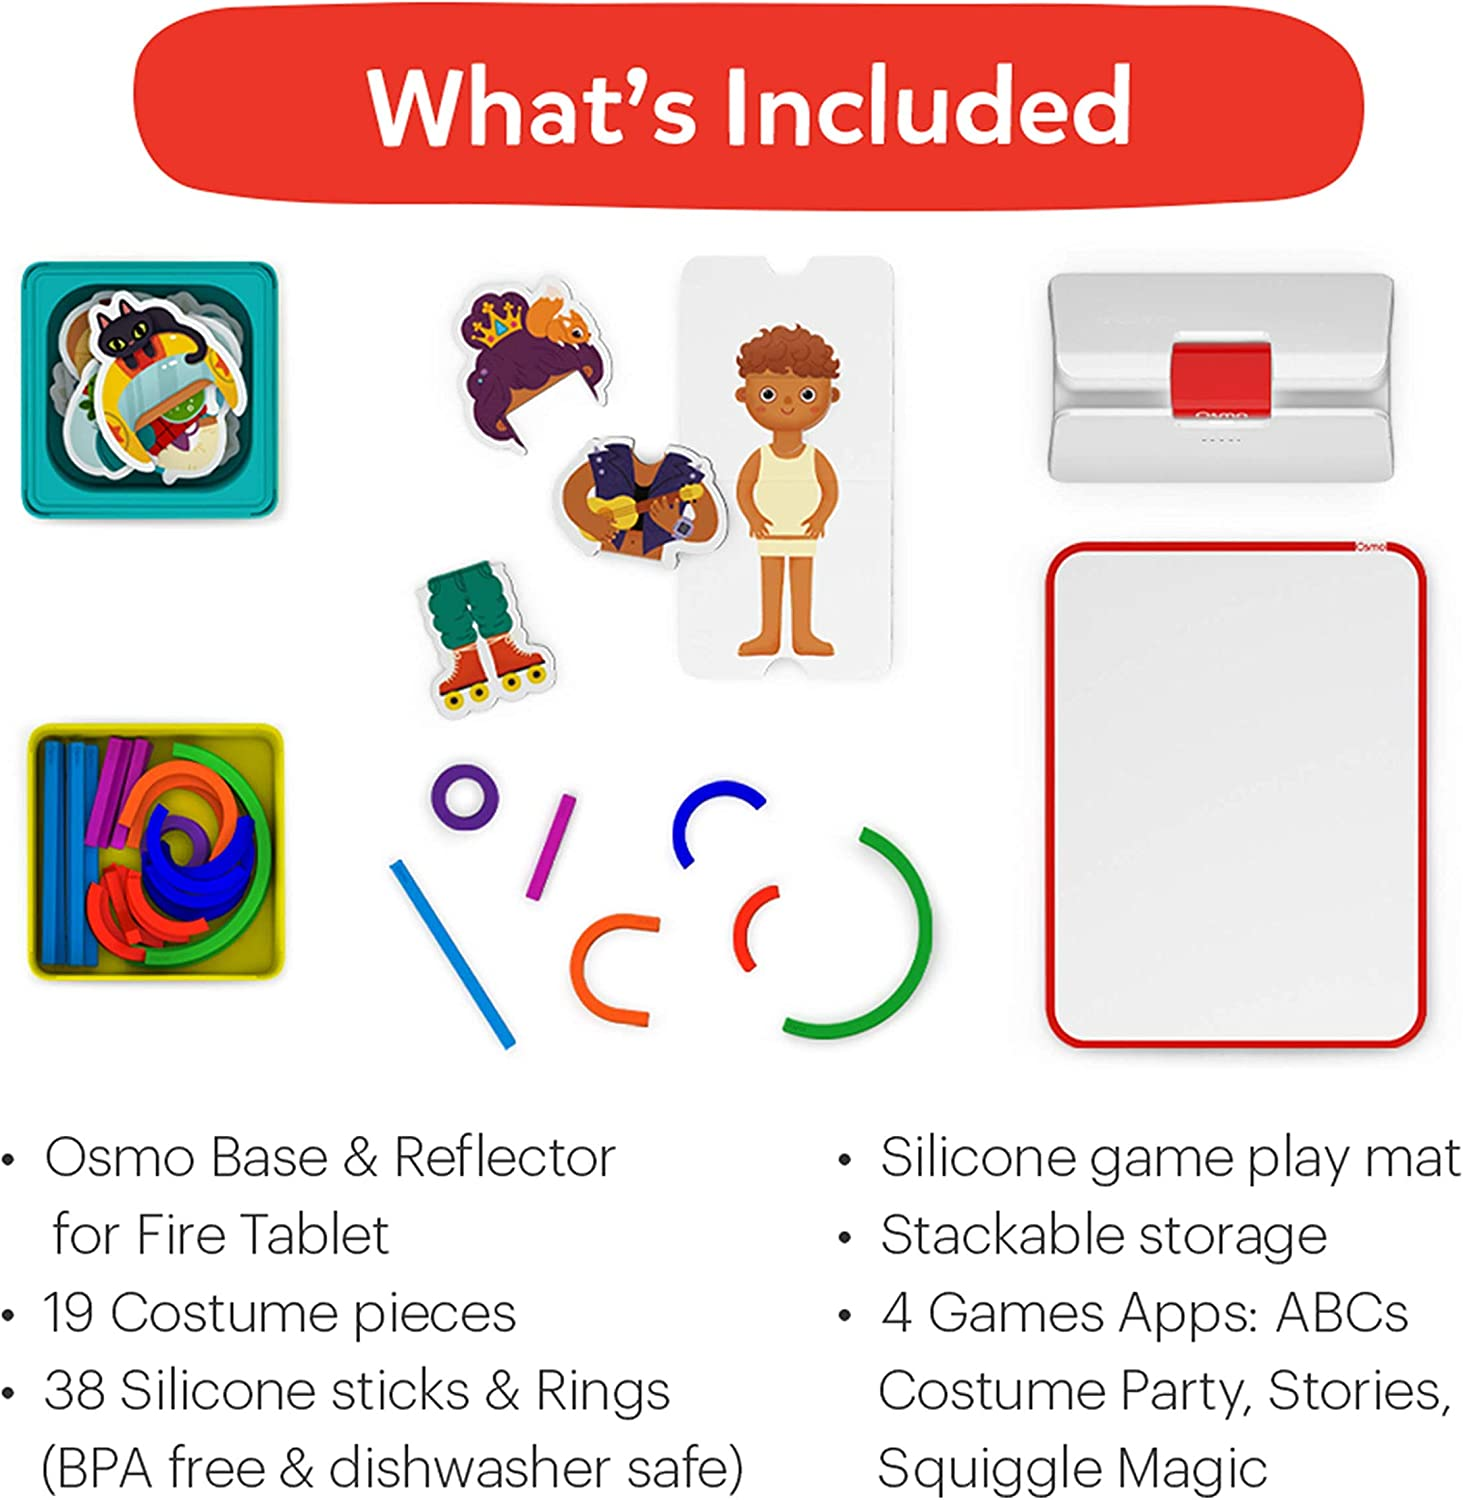 4 Hands-On Learning Games /& Creativity Problem Solving Preschool Ages Osmo Fire Tablet Base Included -  Exclusive Osmo Little Genius Starter Kit for Fire Tablet